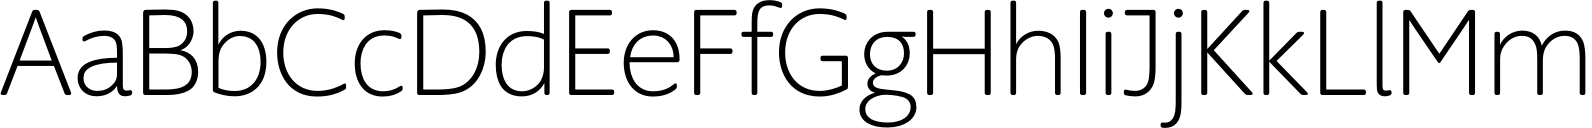 Supra Rounded ExtraLight Font